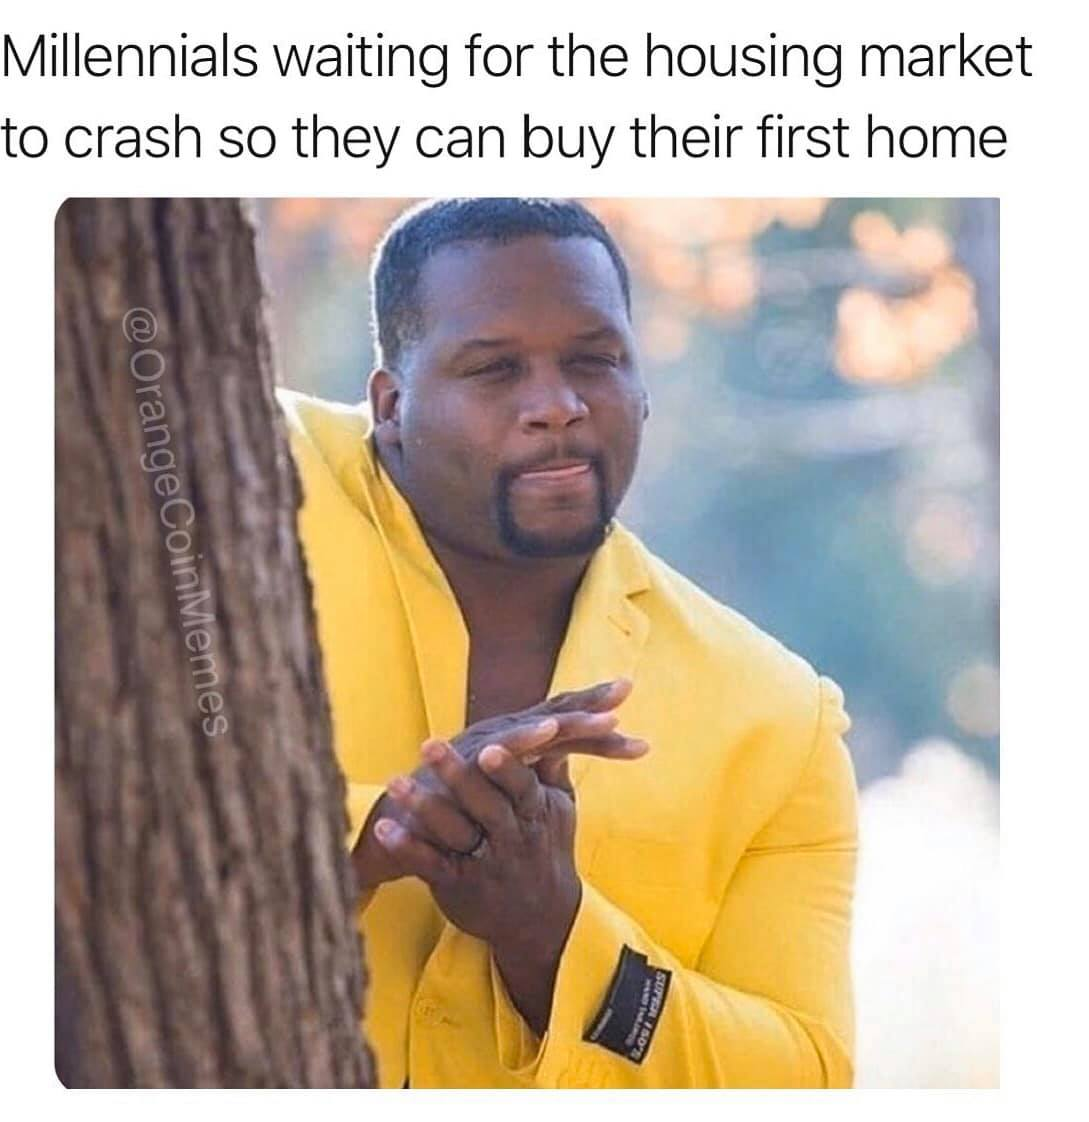 millennials waiting for the housing market to crash so they can buy their first home, meme